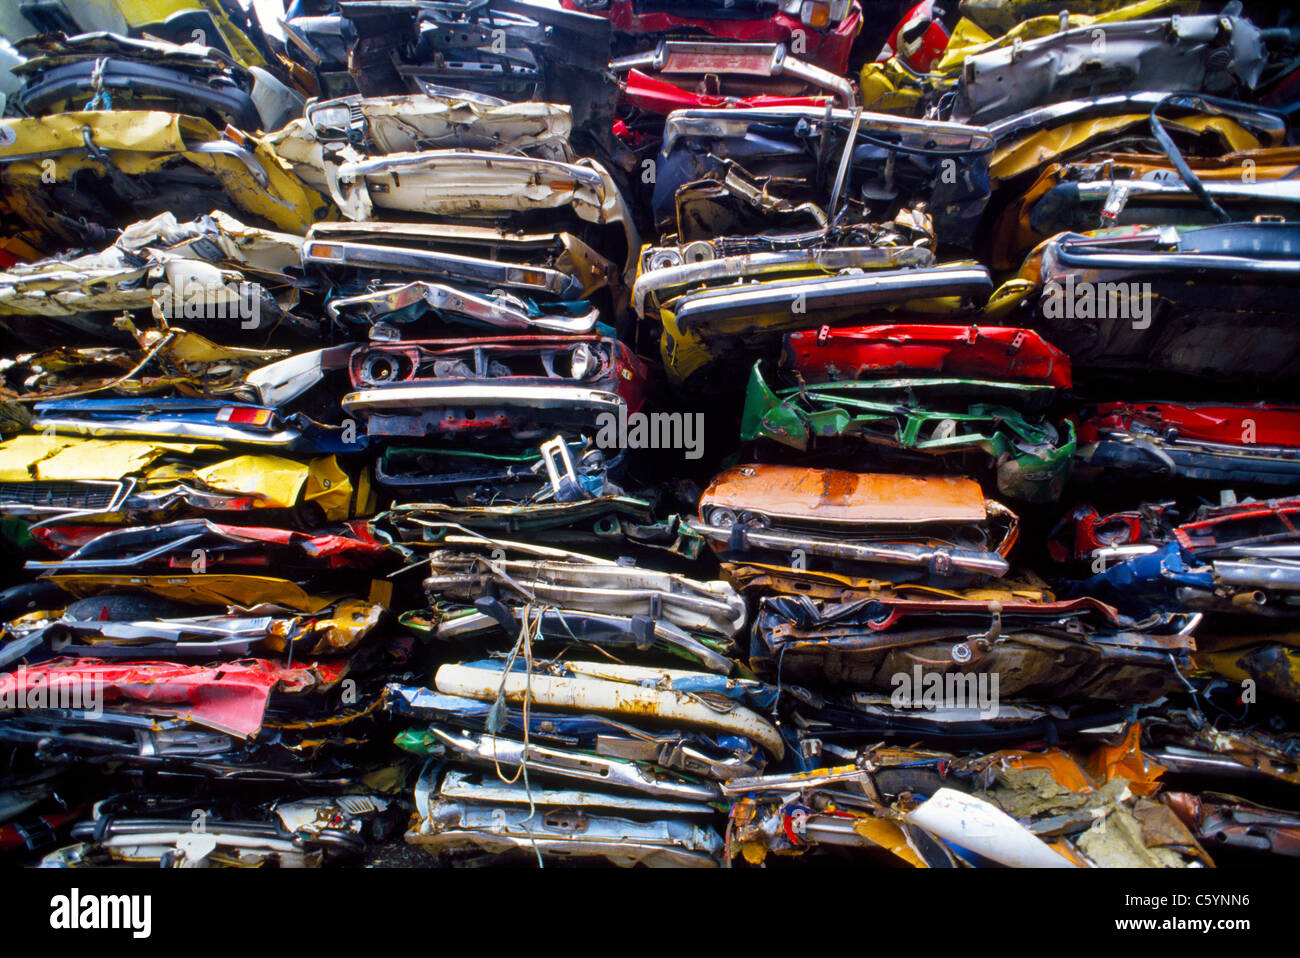 Exelent Selling Car For Scrap Metal Crest - Classic Cars Ideas ...